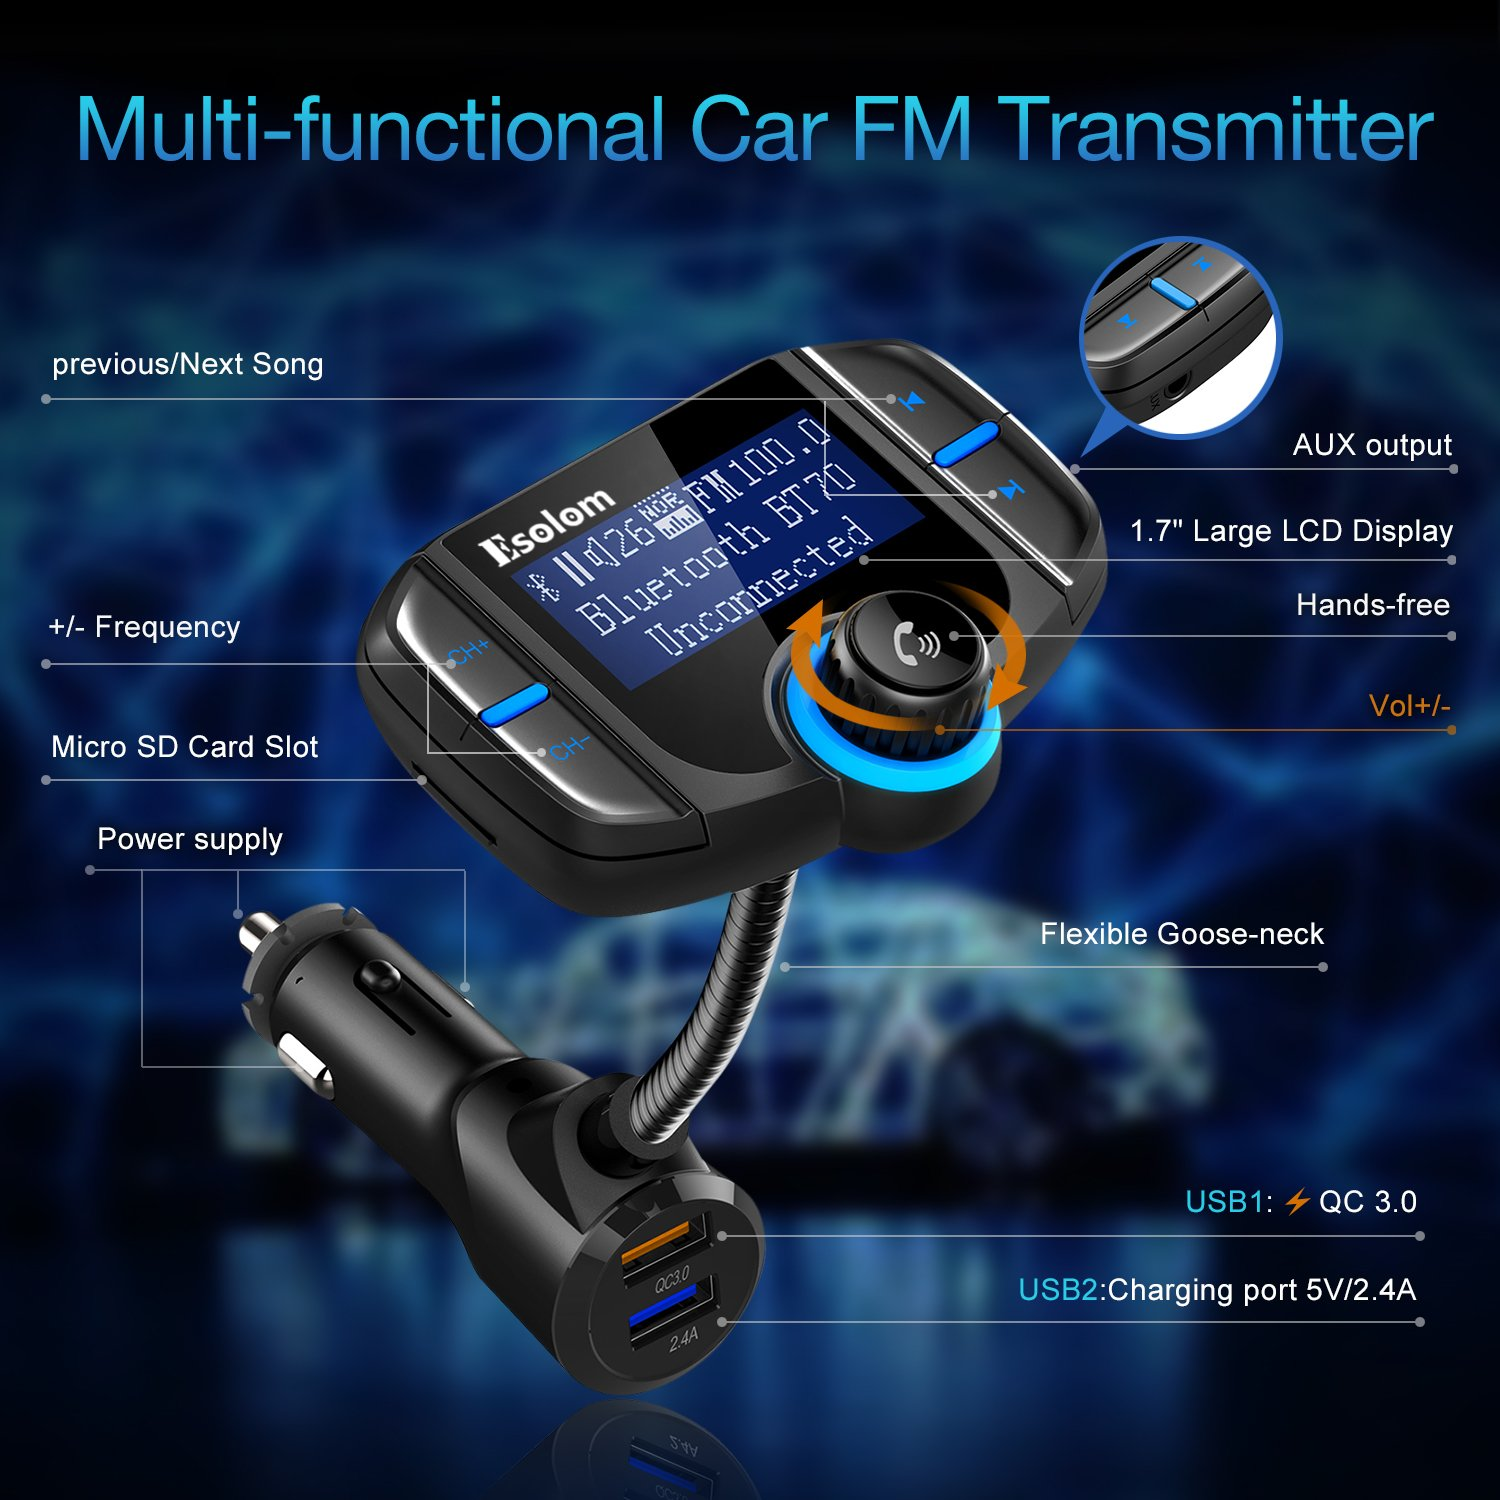 """Bluetooth FM Transmitter, ESOLOM Wireless Car Stereo Radio Adapter Receiver, Hands-free Calling Car Kit with 1.7"""" Display, QC3.0 & Smart 2.4A Dual USB Ports, Support TF Card, AUX Input/Output by ESOLOM (Image #5)"""